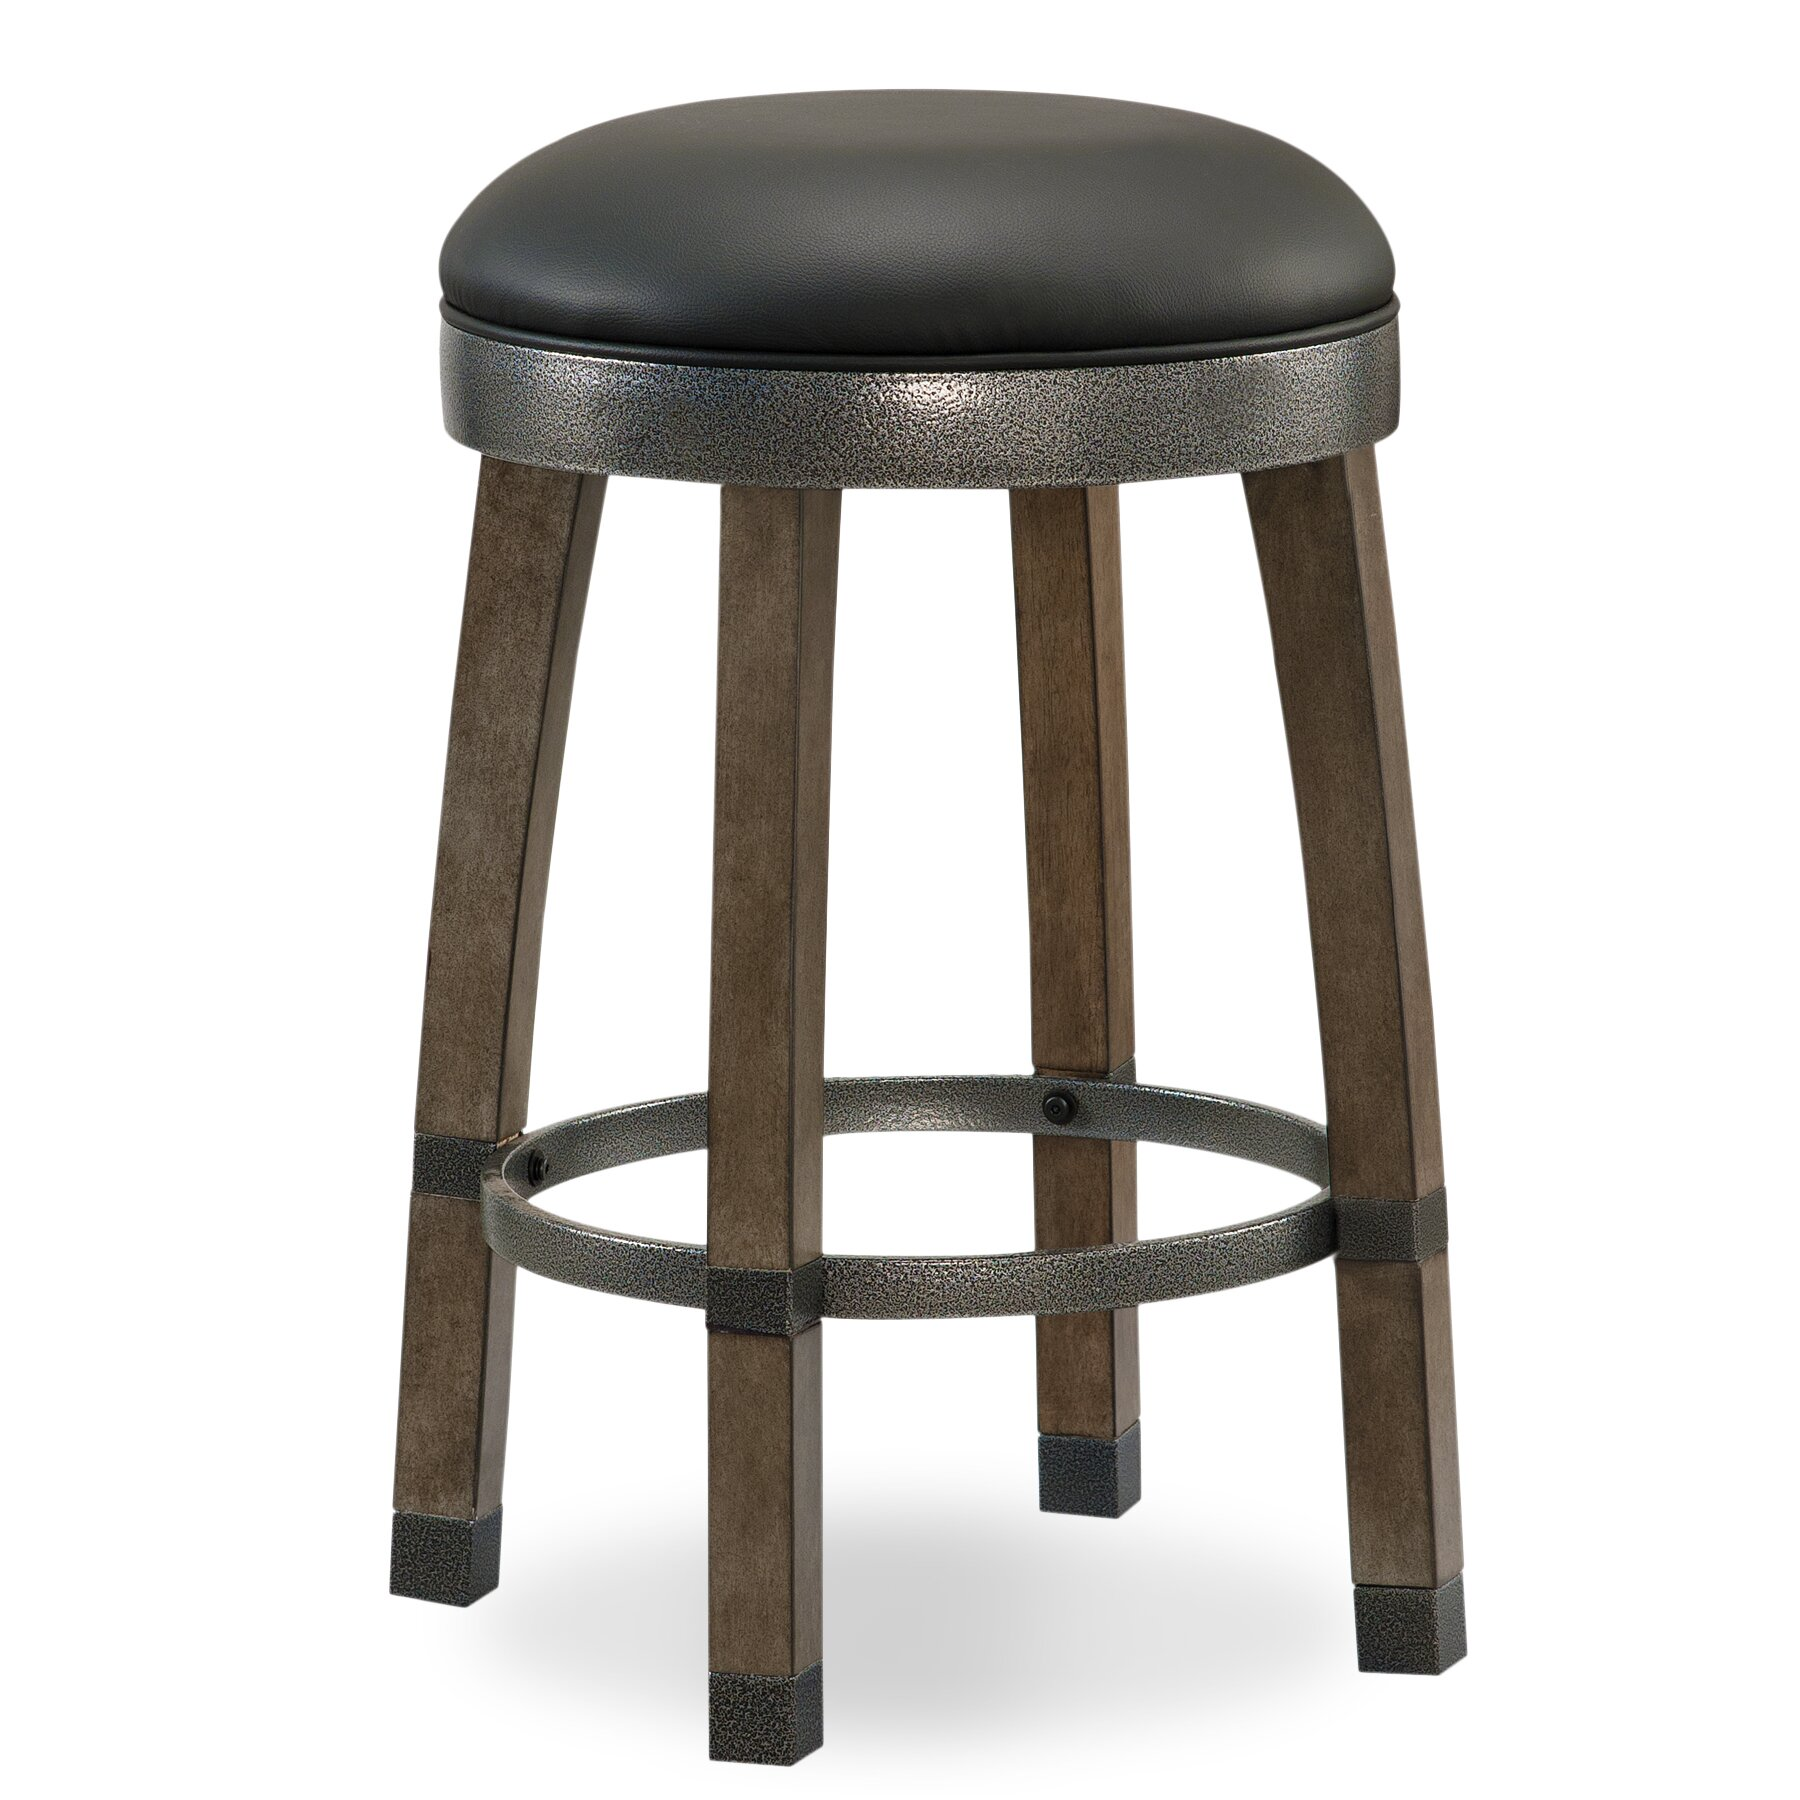 26 Bar Stools Swivel Impacterra Susan 26 Quot Swivel Bar